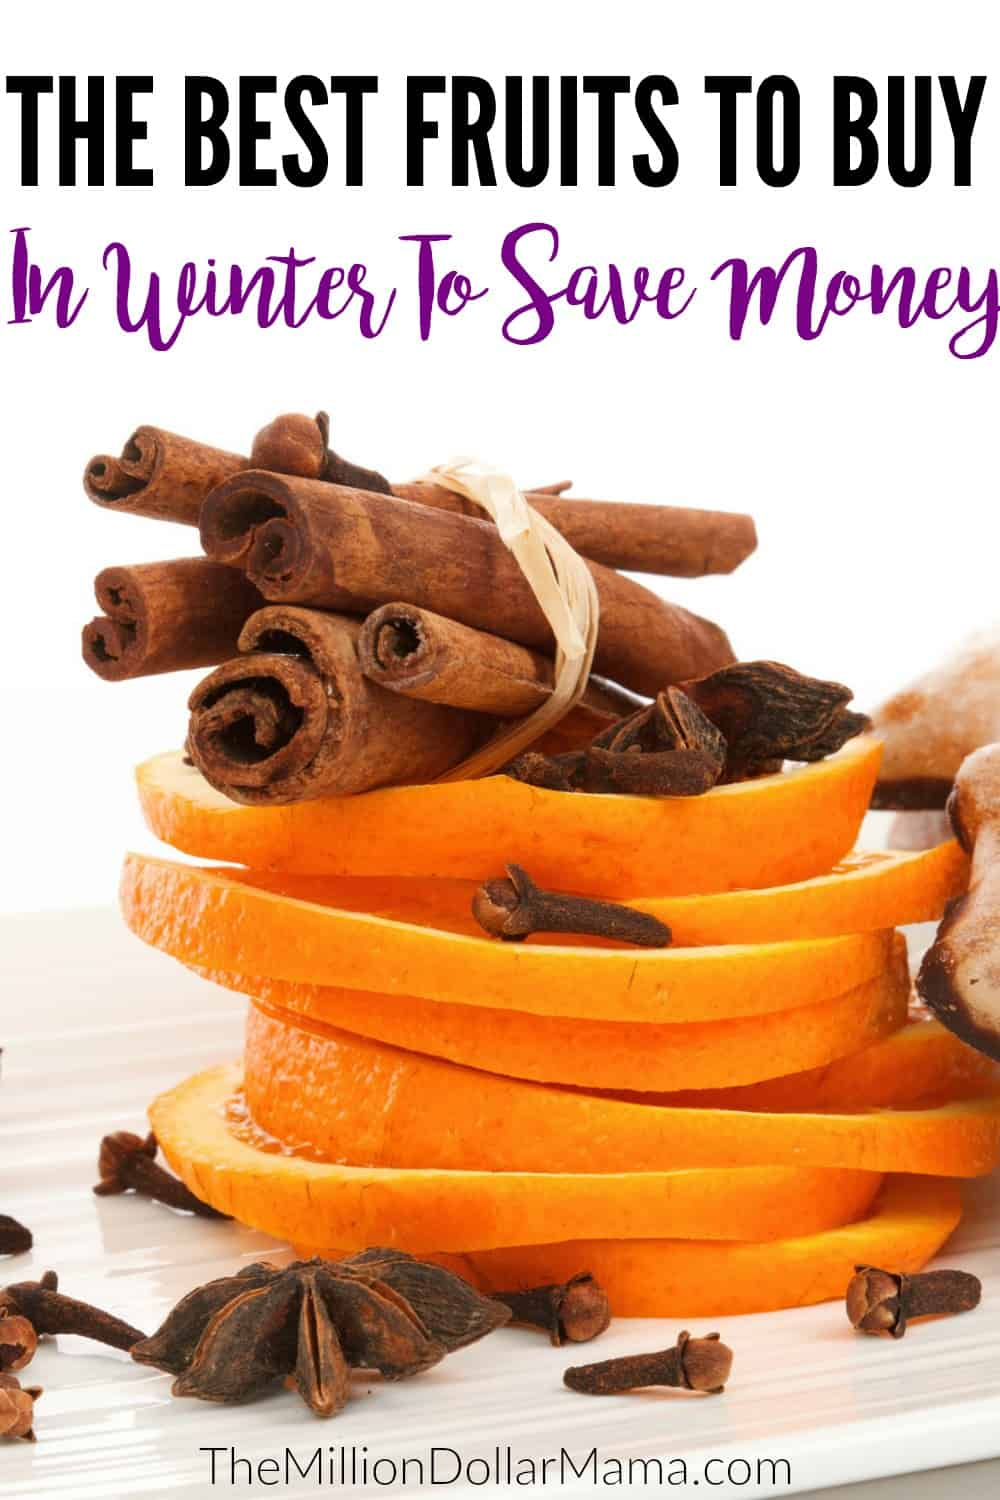 Avoid overspending on groceries by making sure you buy produce that's in season. Here are the winter fruits you should be buying to save money on groceries.